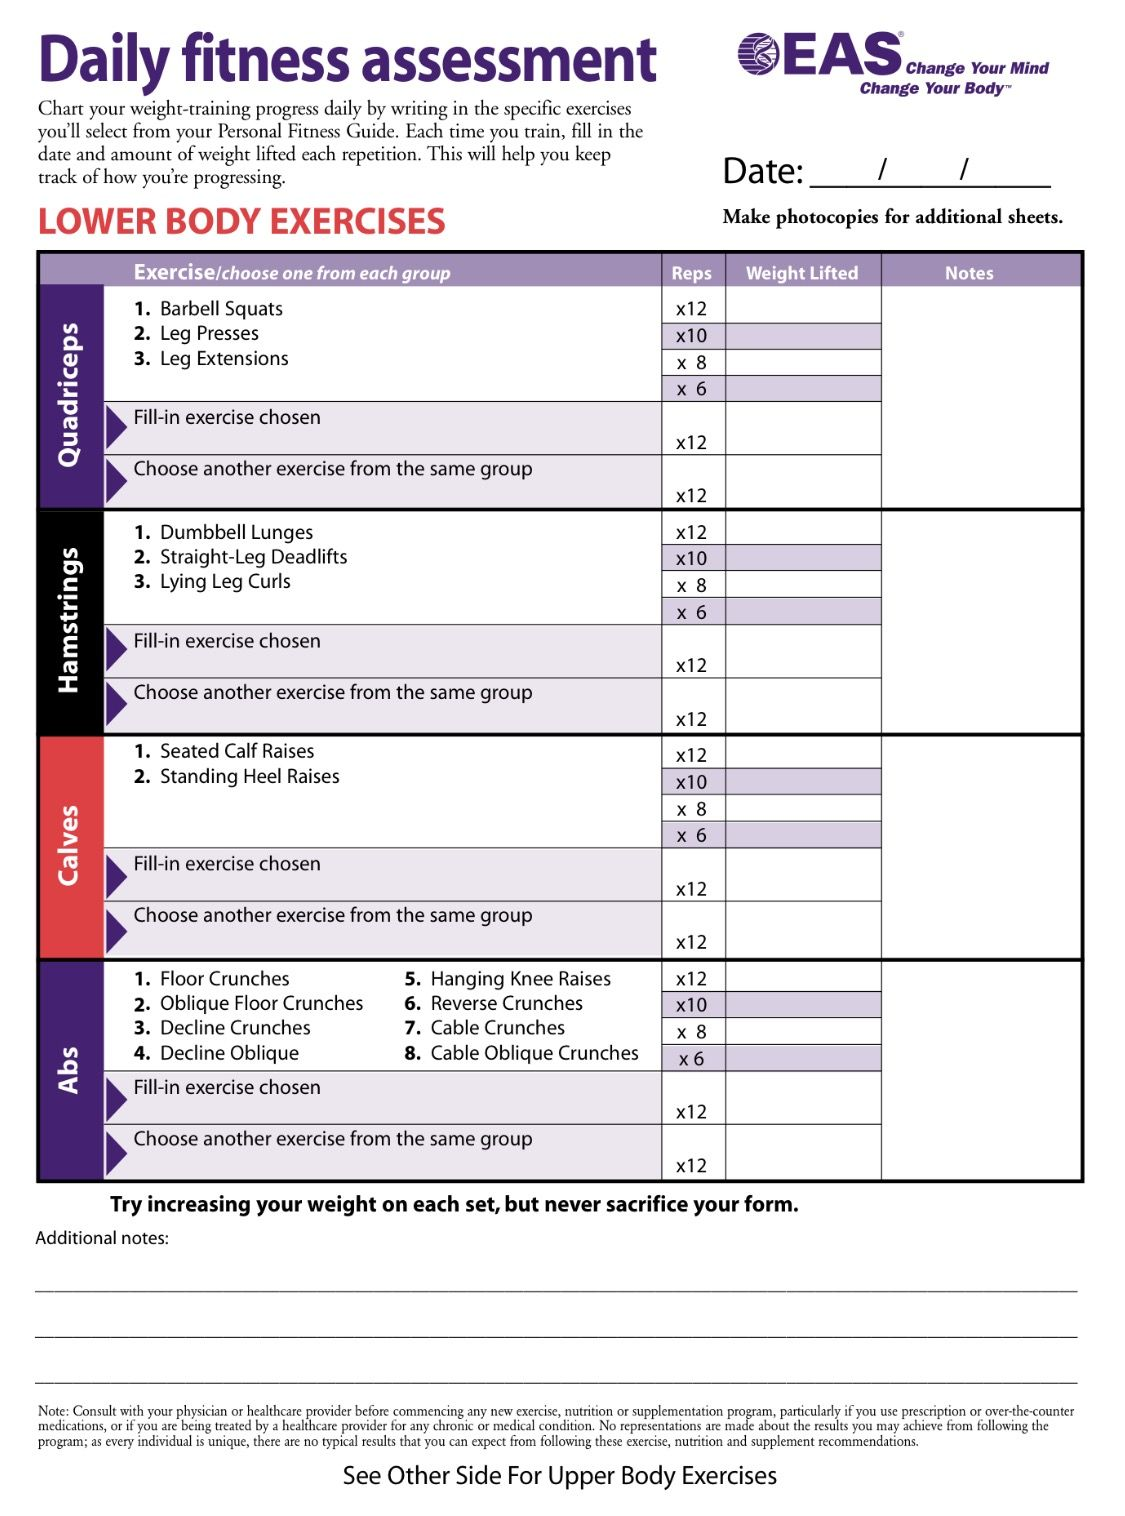 body for life exercises Eas Body For Life Workout Sheets | Yourviewsite.co